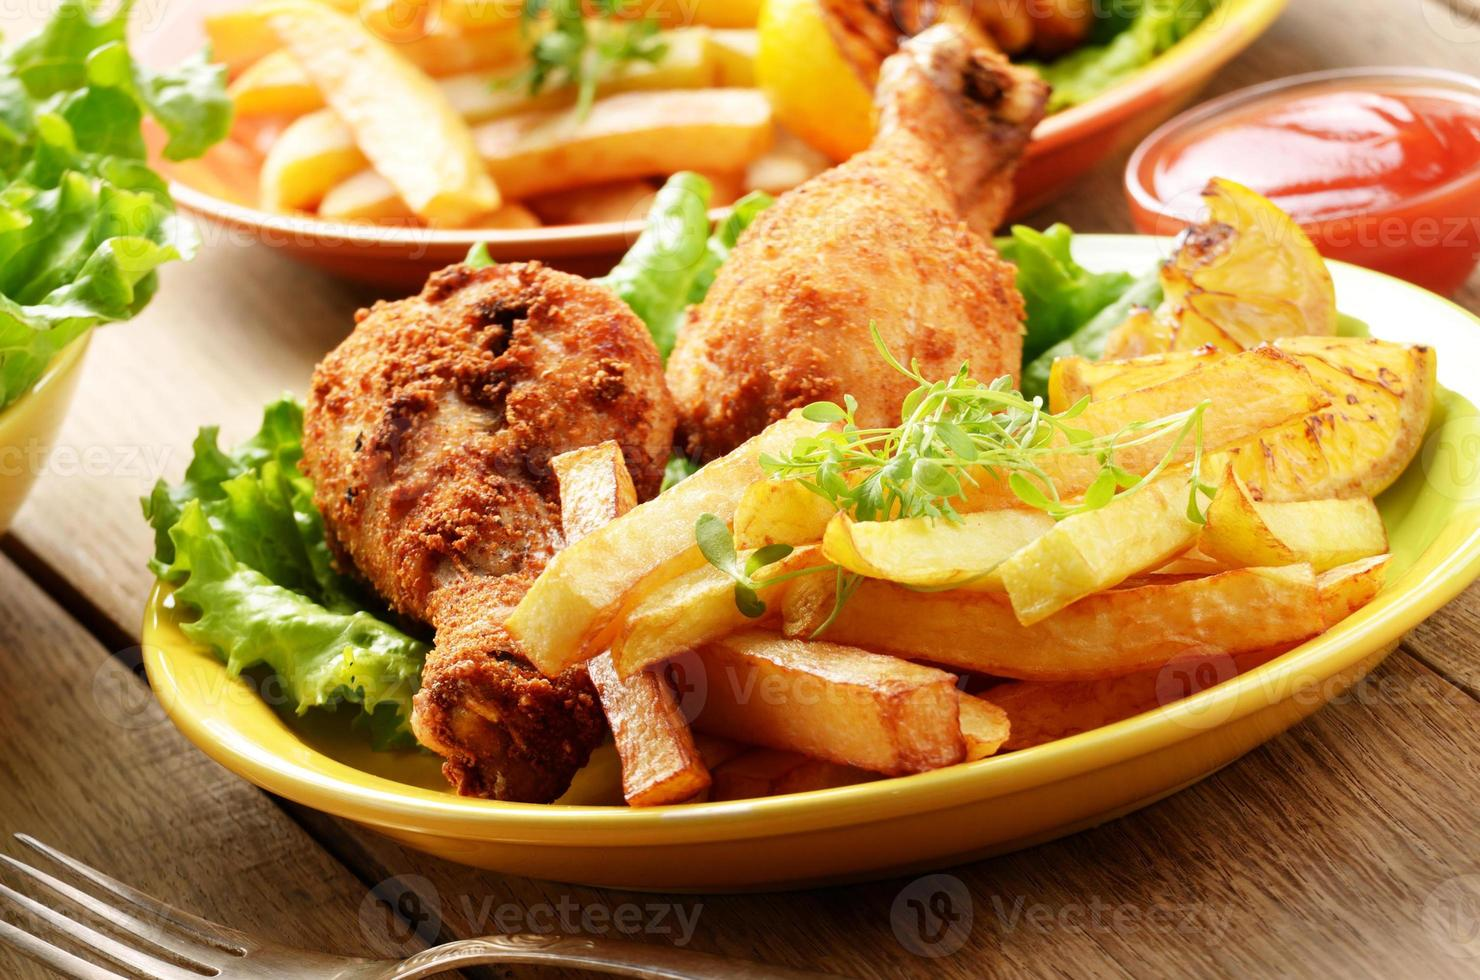 Fried drumsticks with french fries photo